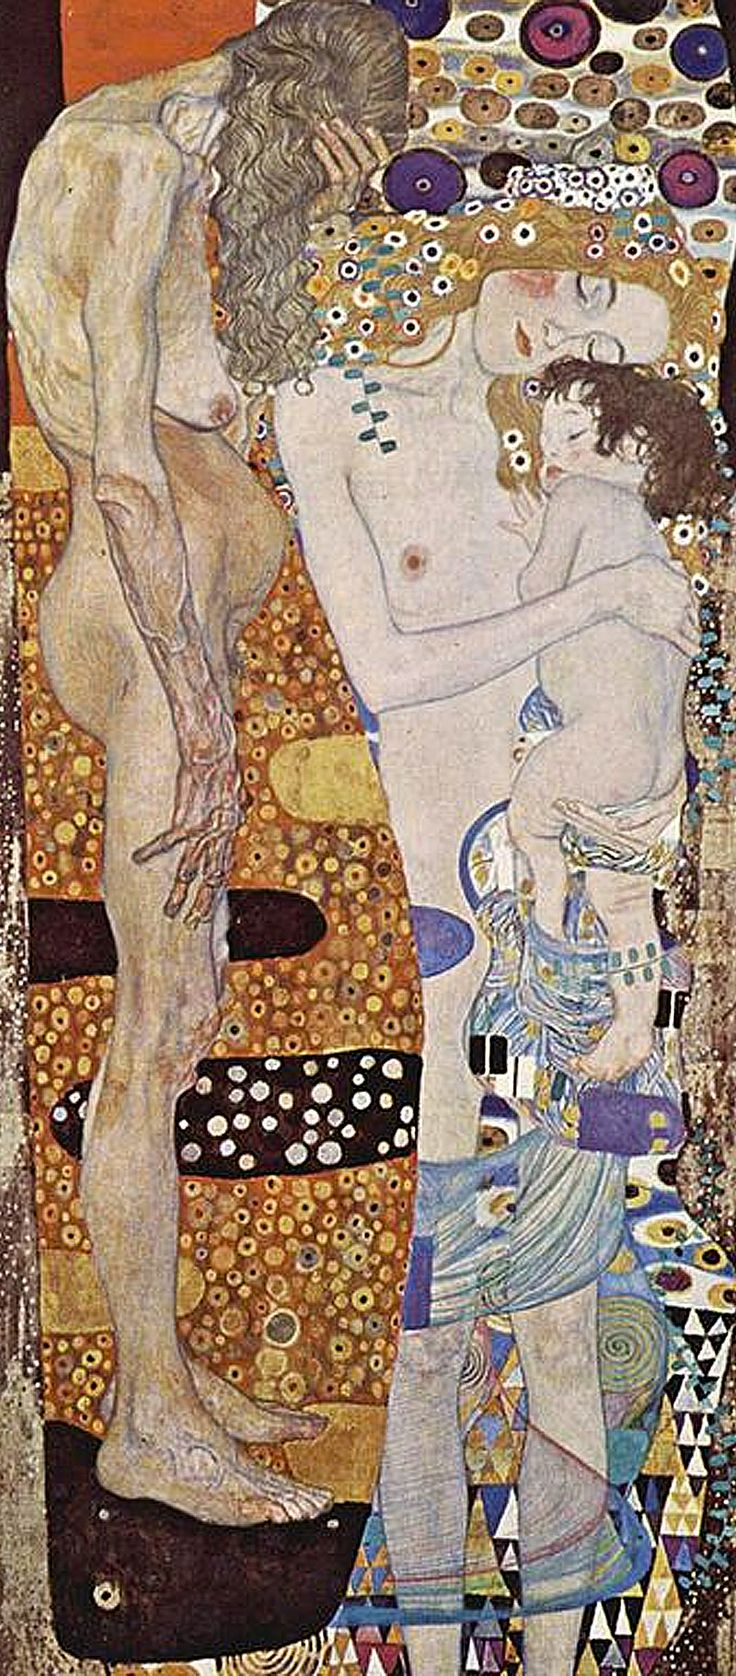 Gustav Klimt 'The Three Ages of Woman' detail, 1905